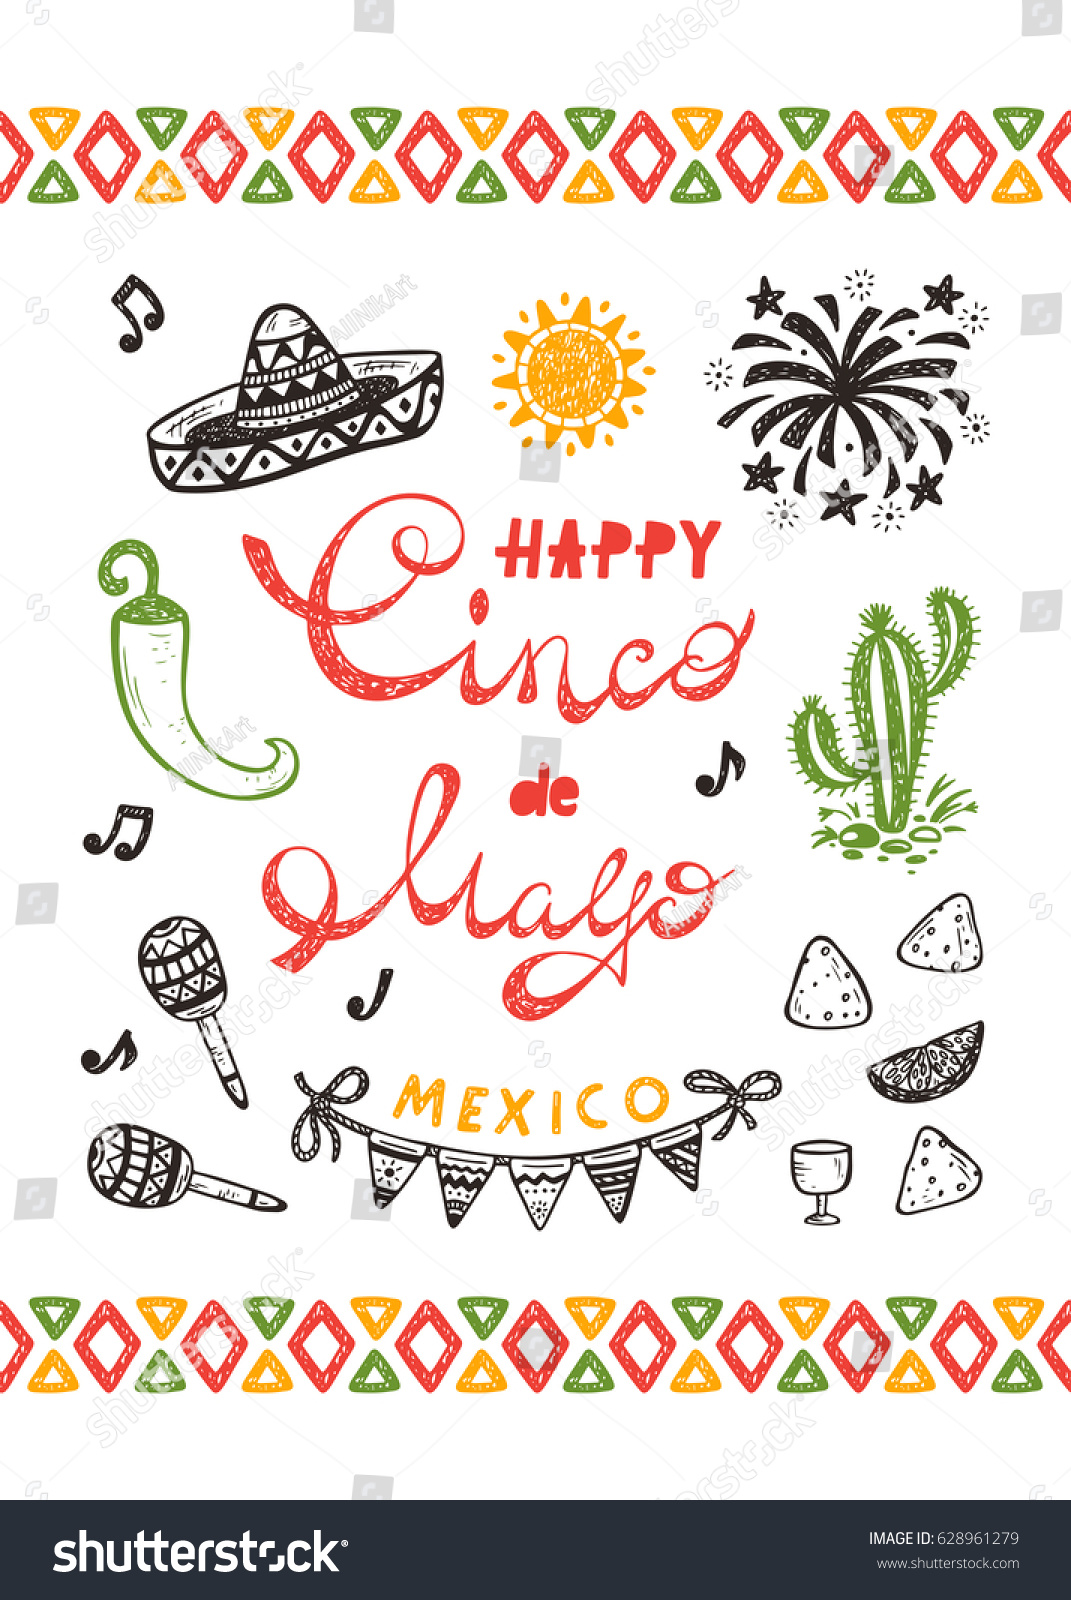 Mexico mexican holiday happy synco de stock vector 628961279 mexico mexican holiday happy synco de mayo vector greeting card with hand drawn doodle m4hsunfo Image collections